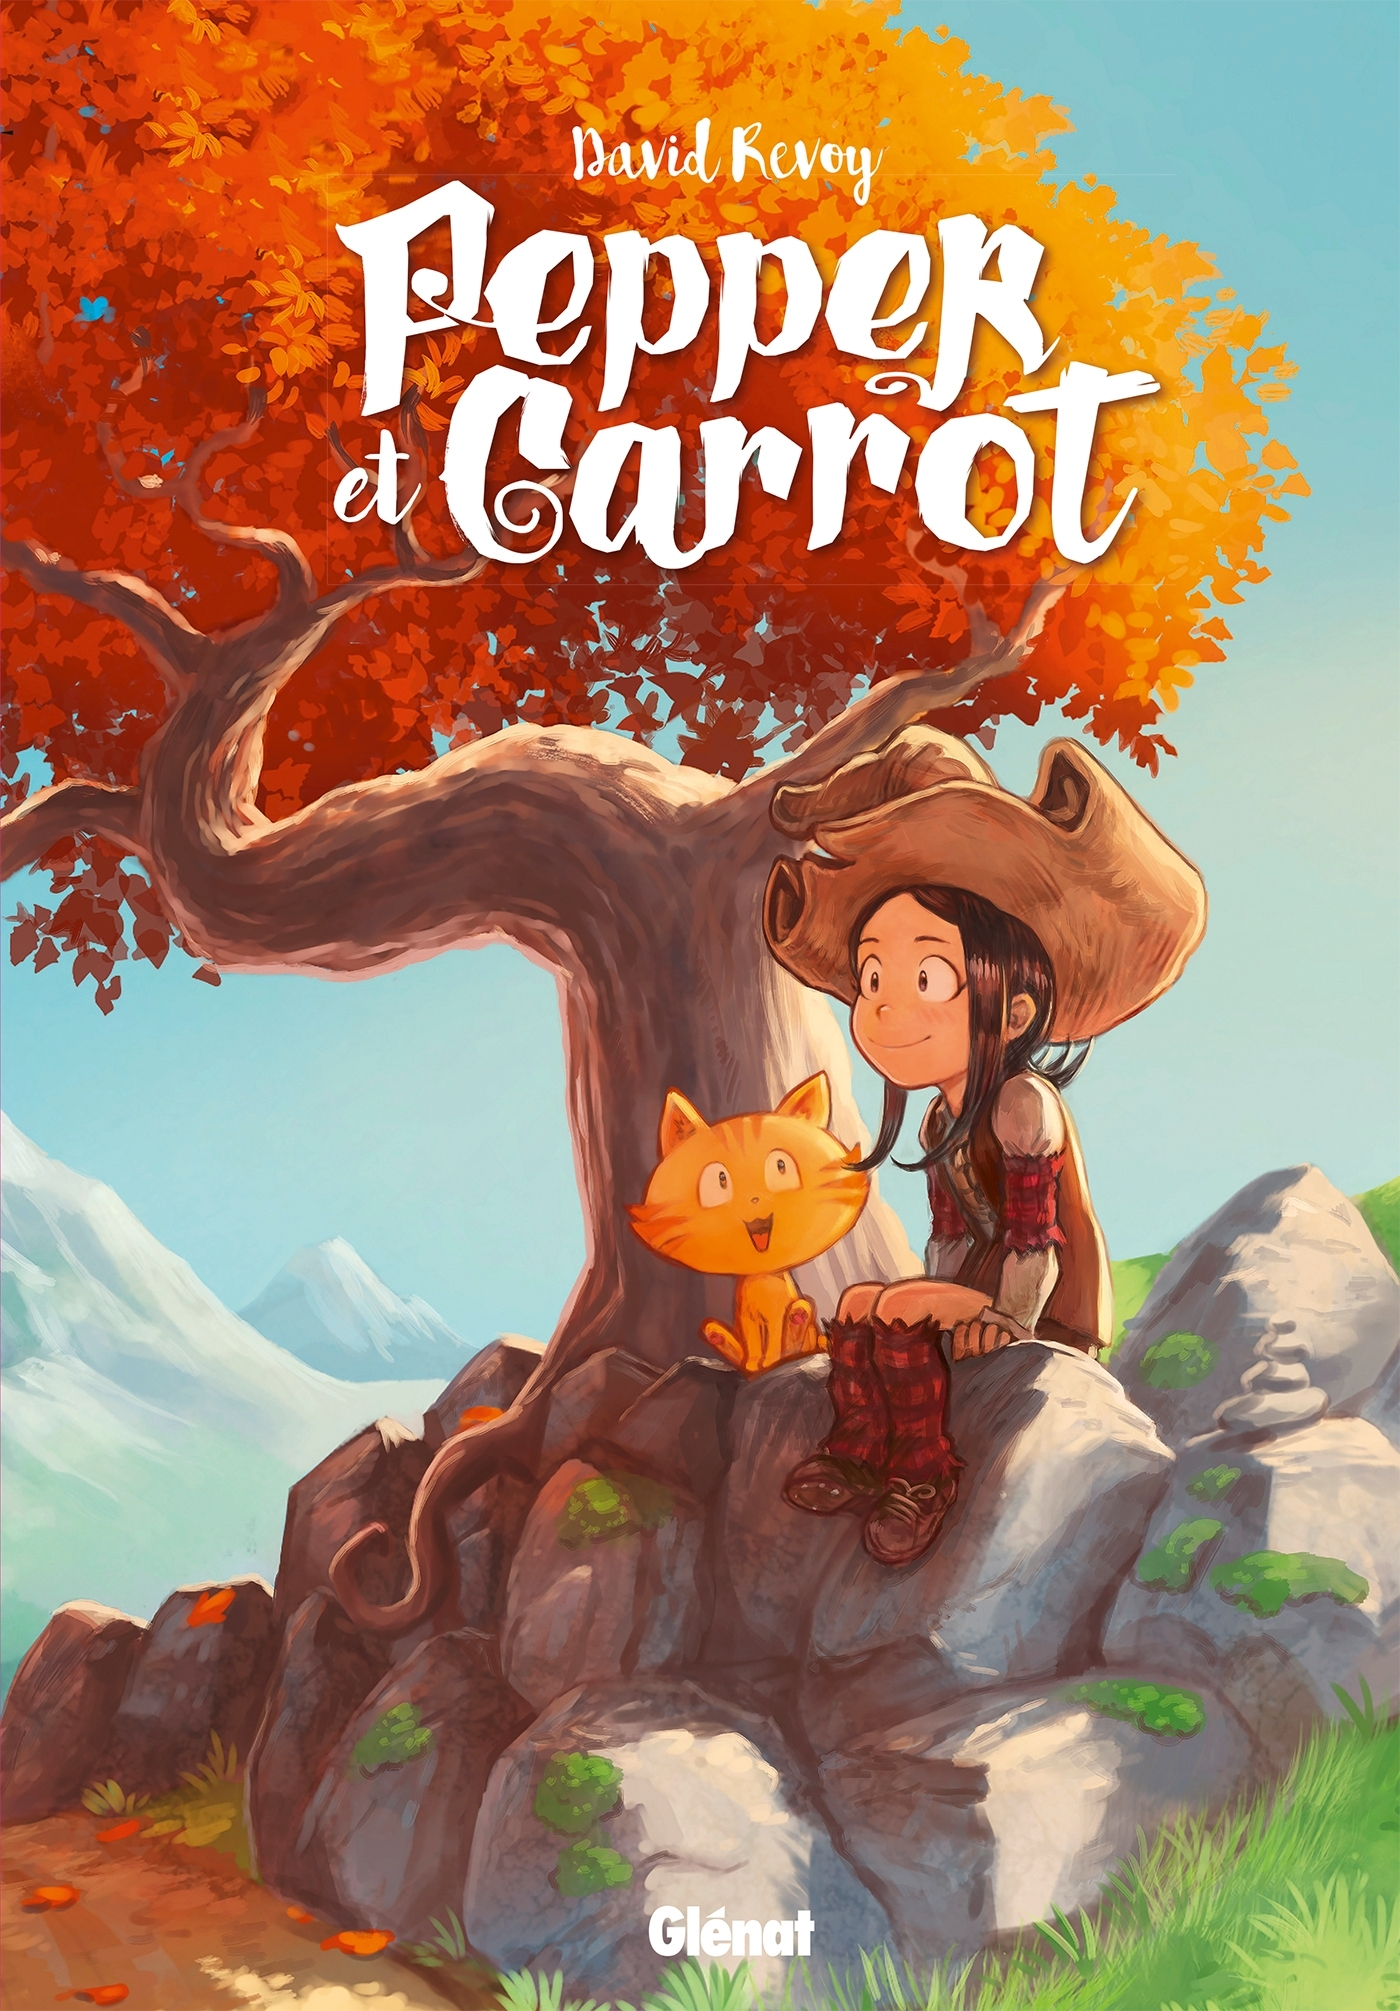 PEPPER ET CARROT - COFFRET